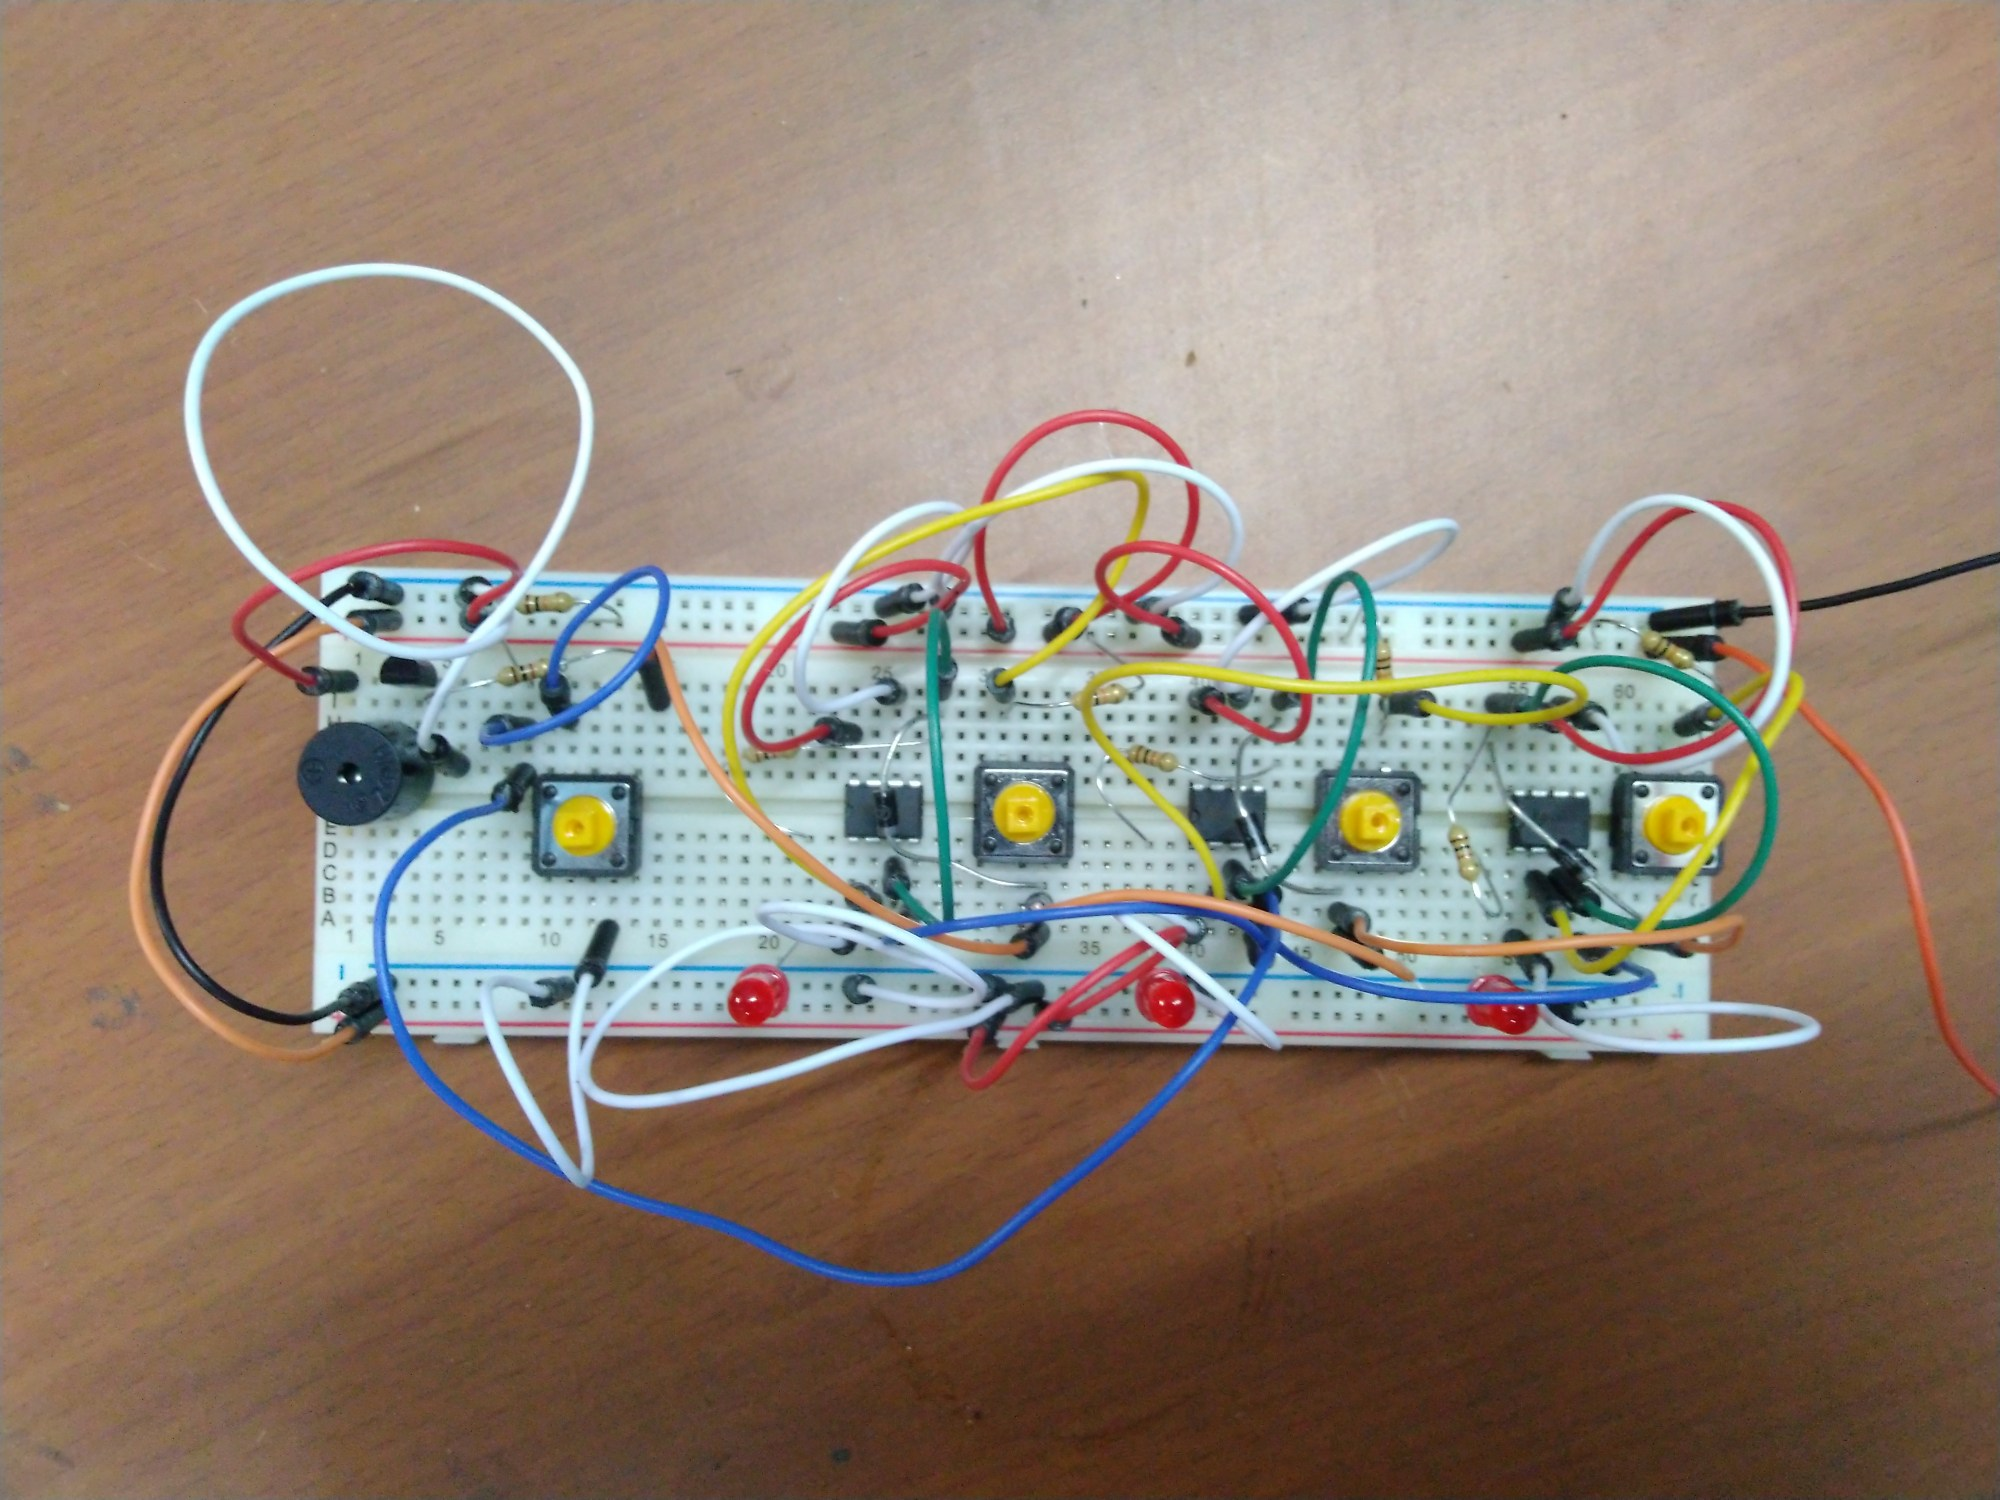 hight resolution of modulation electronic circuits and diagramelectronics projects modulation electronic circuits and diagramelectronics projects kb jpeg led lamp